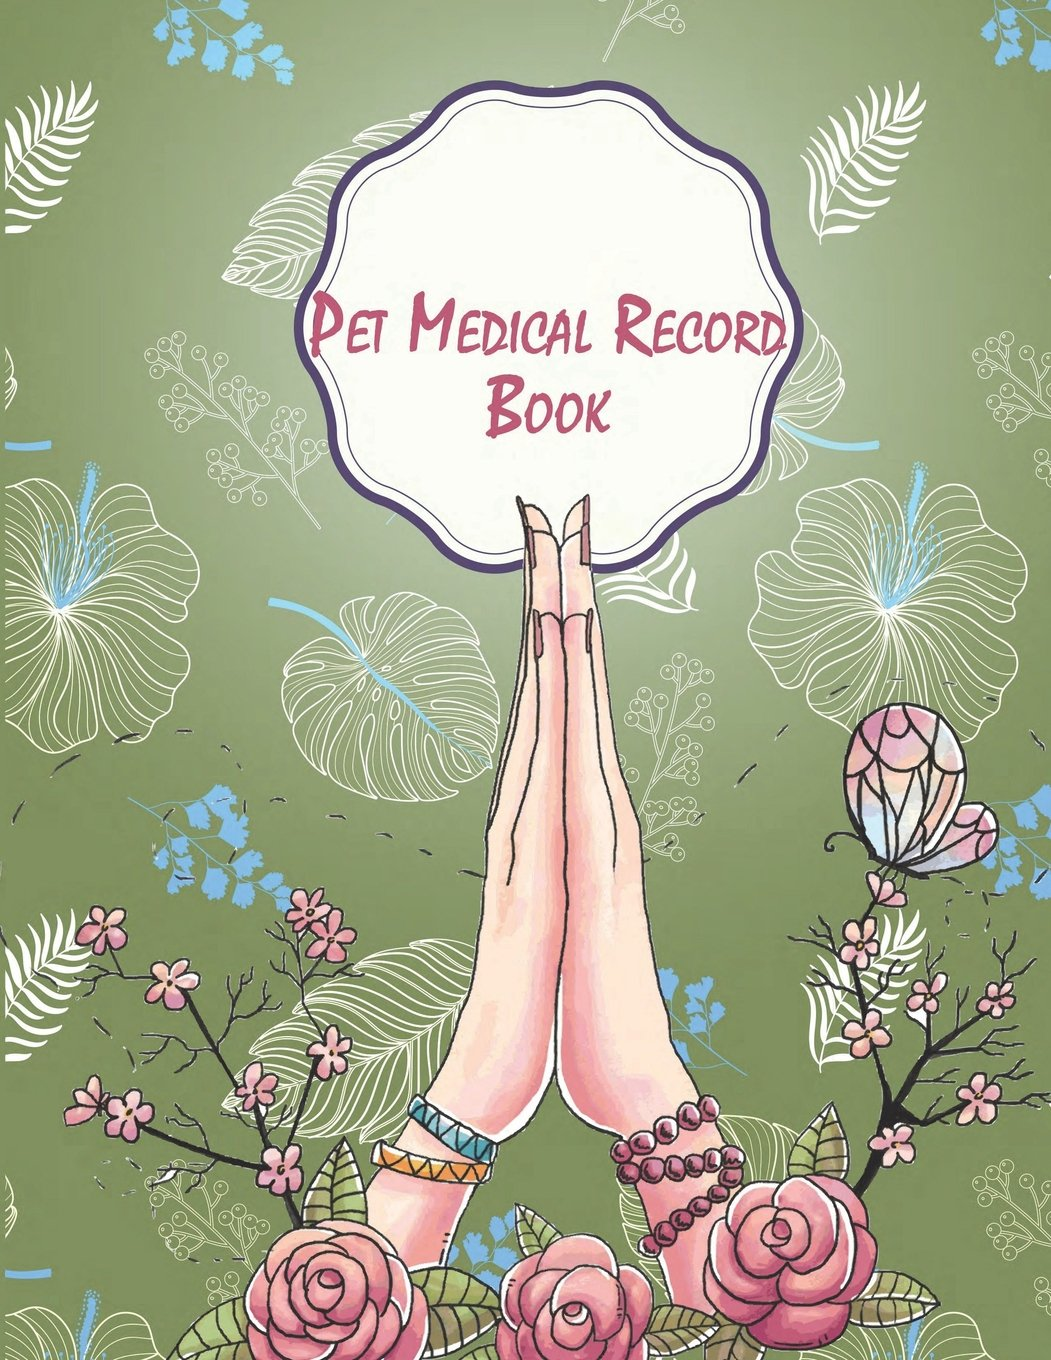 amazon pet medical record book green cover record your pet